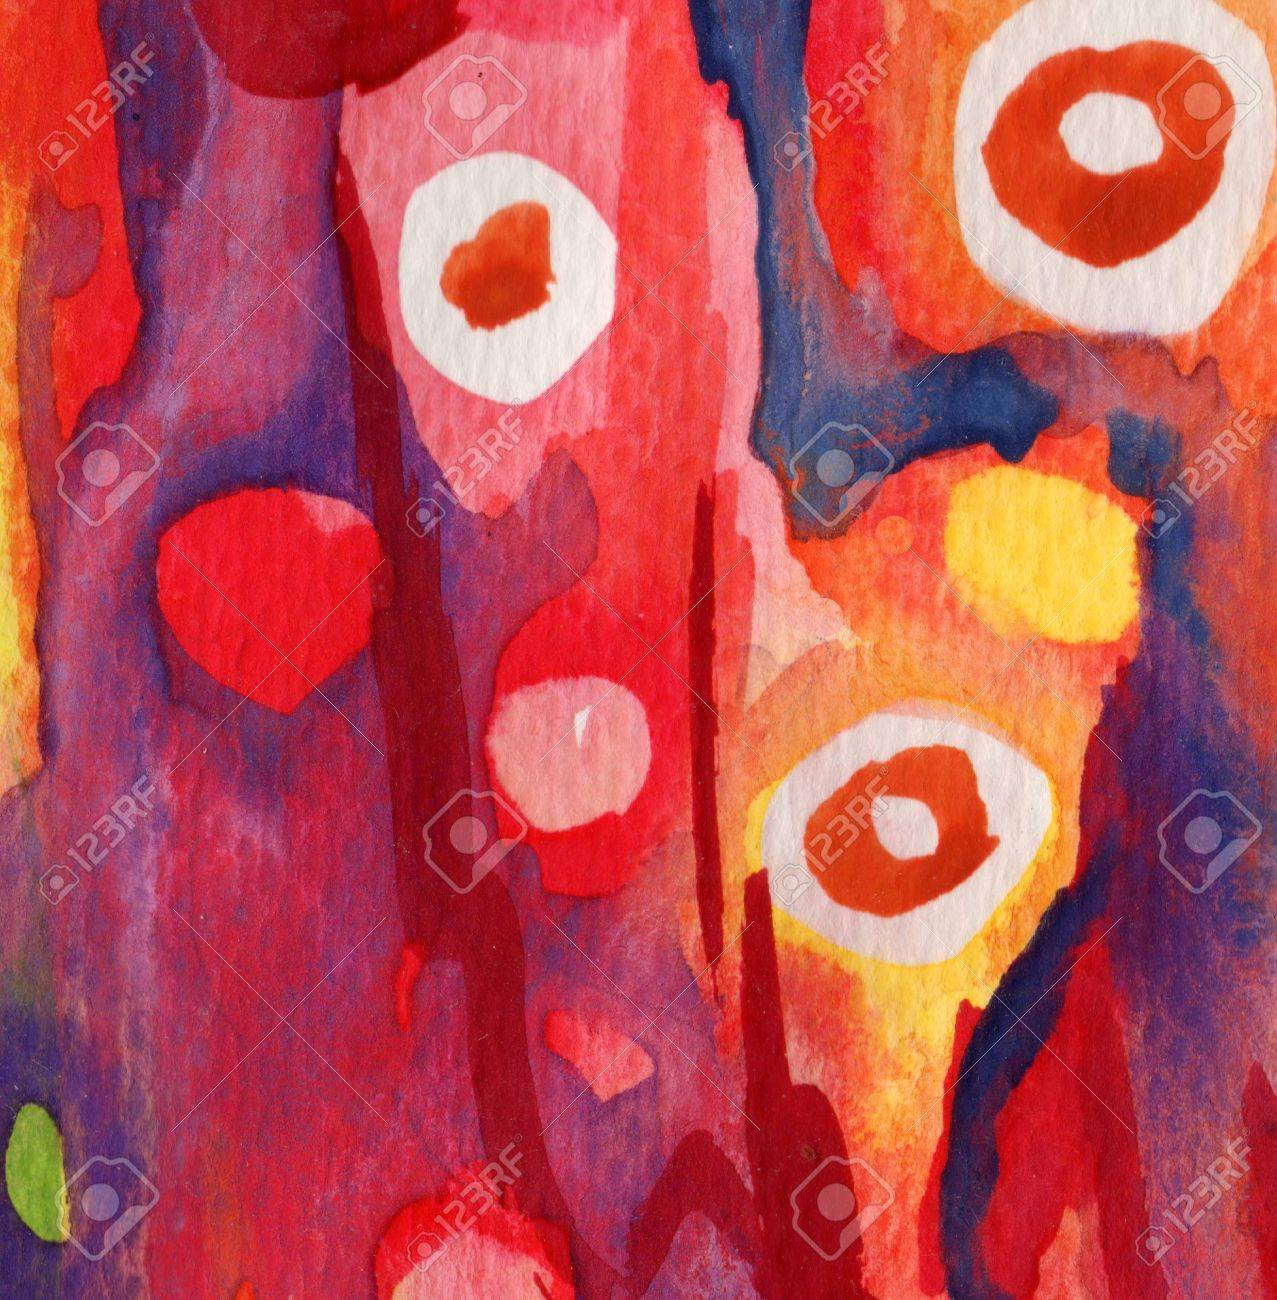 Abstract red, dark blue, yellow watercolor and old background Stock Photo - 15713675